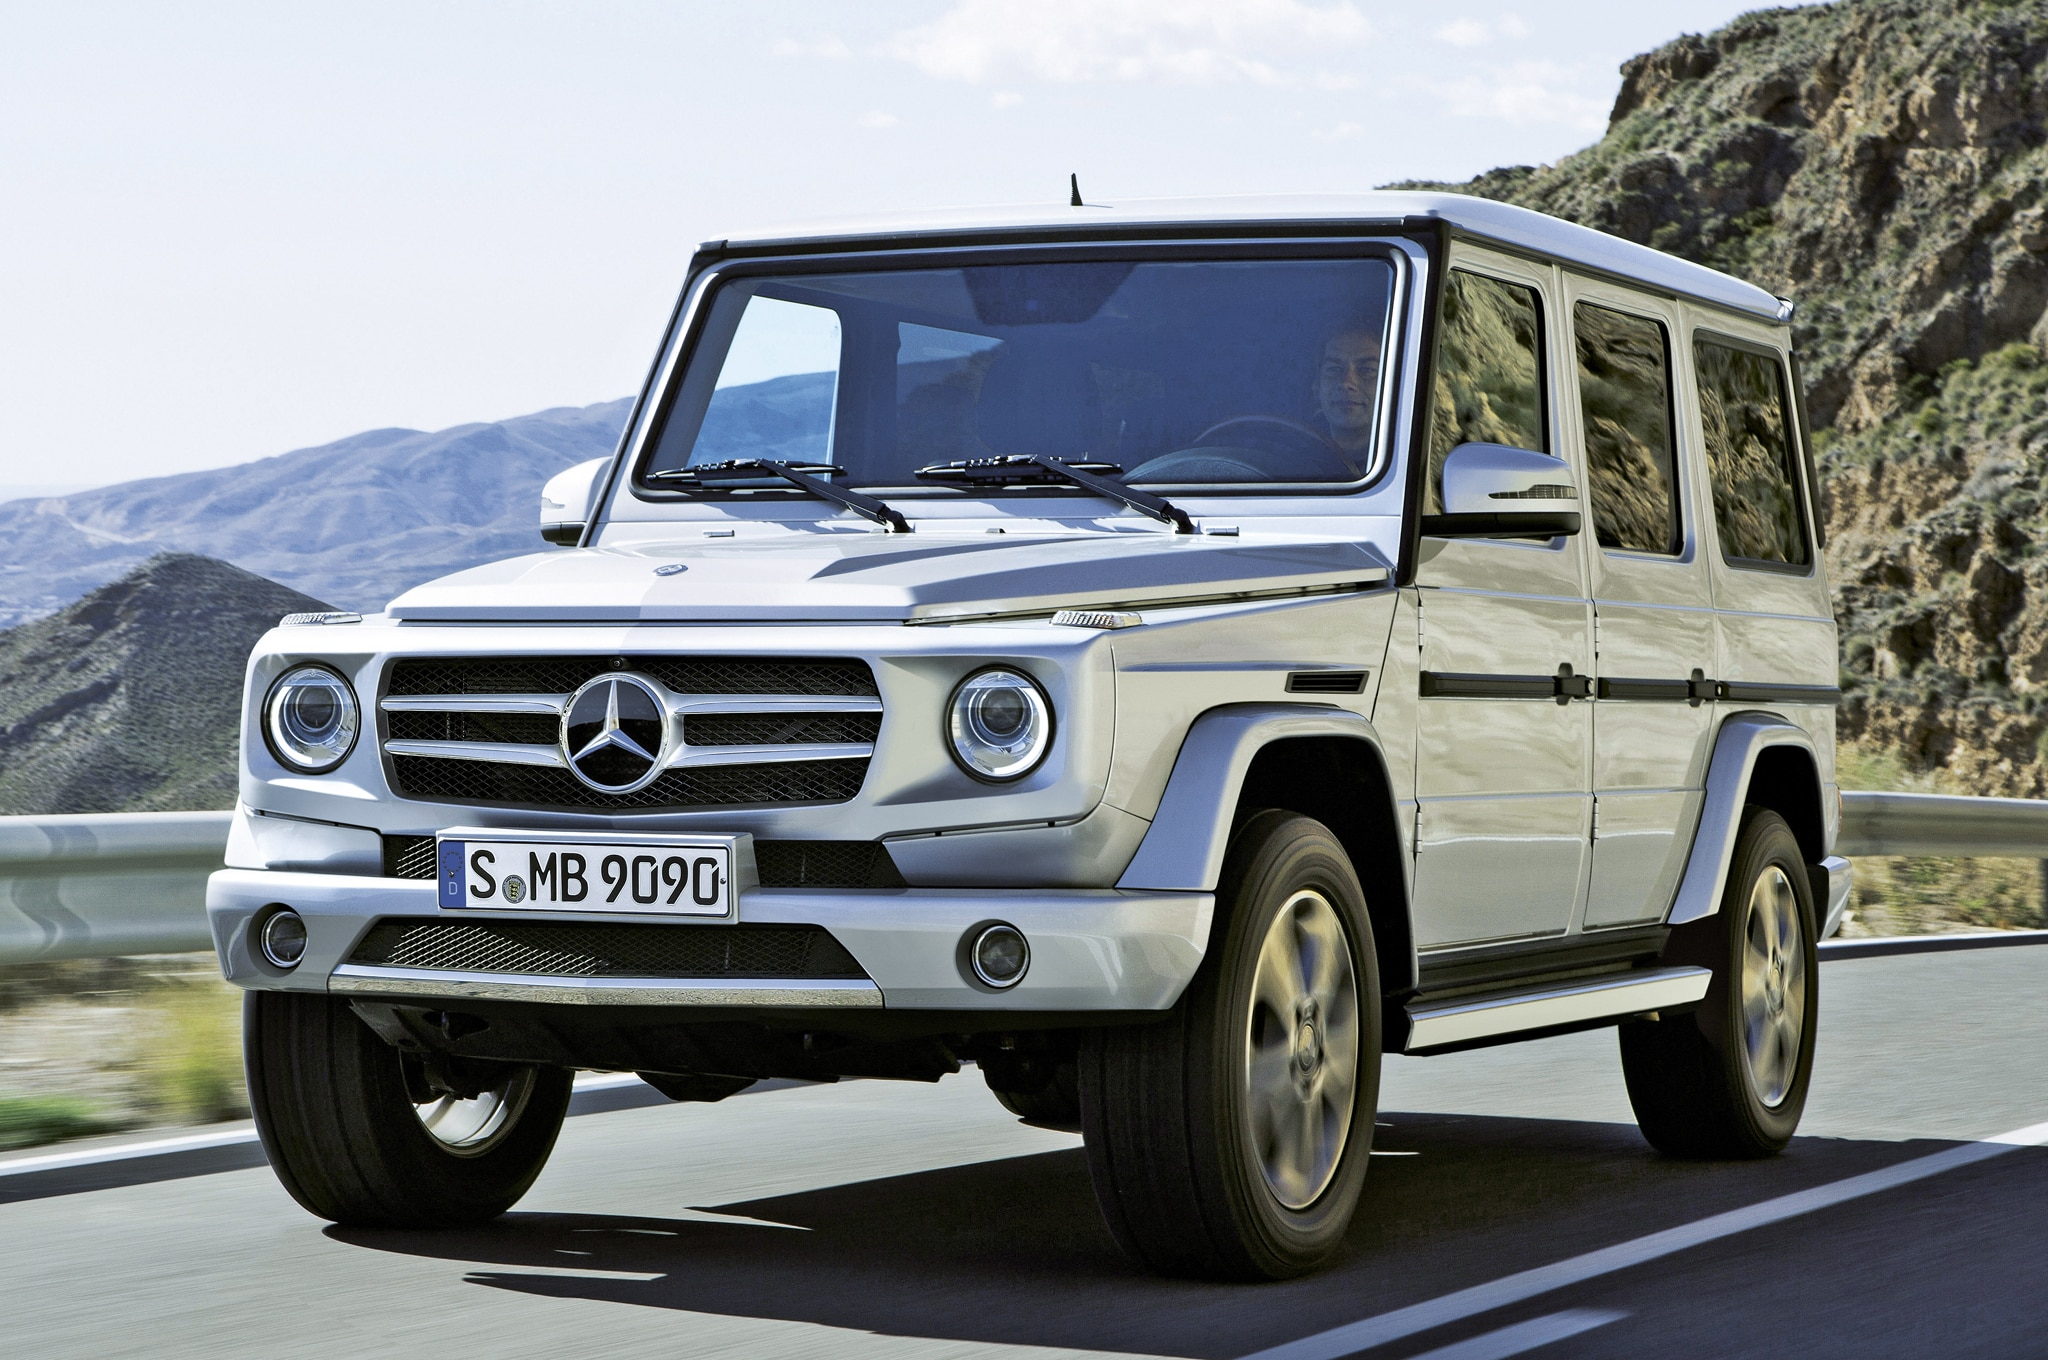 deep dive: 2016 mercedes-benz g-class, 2019 glb crossover - automobile